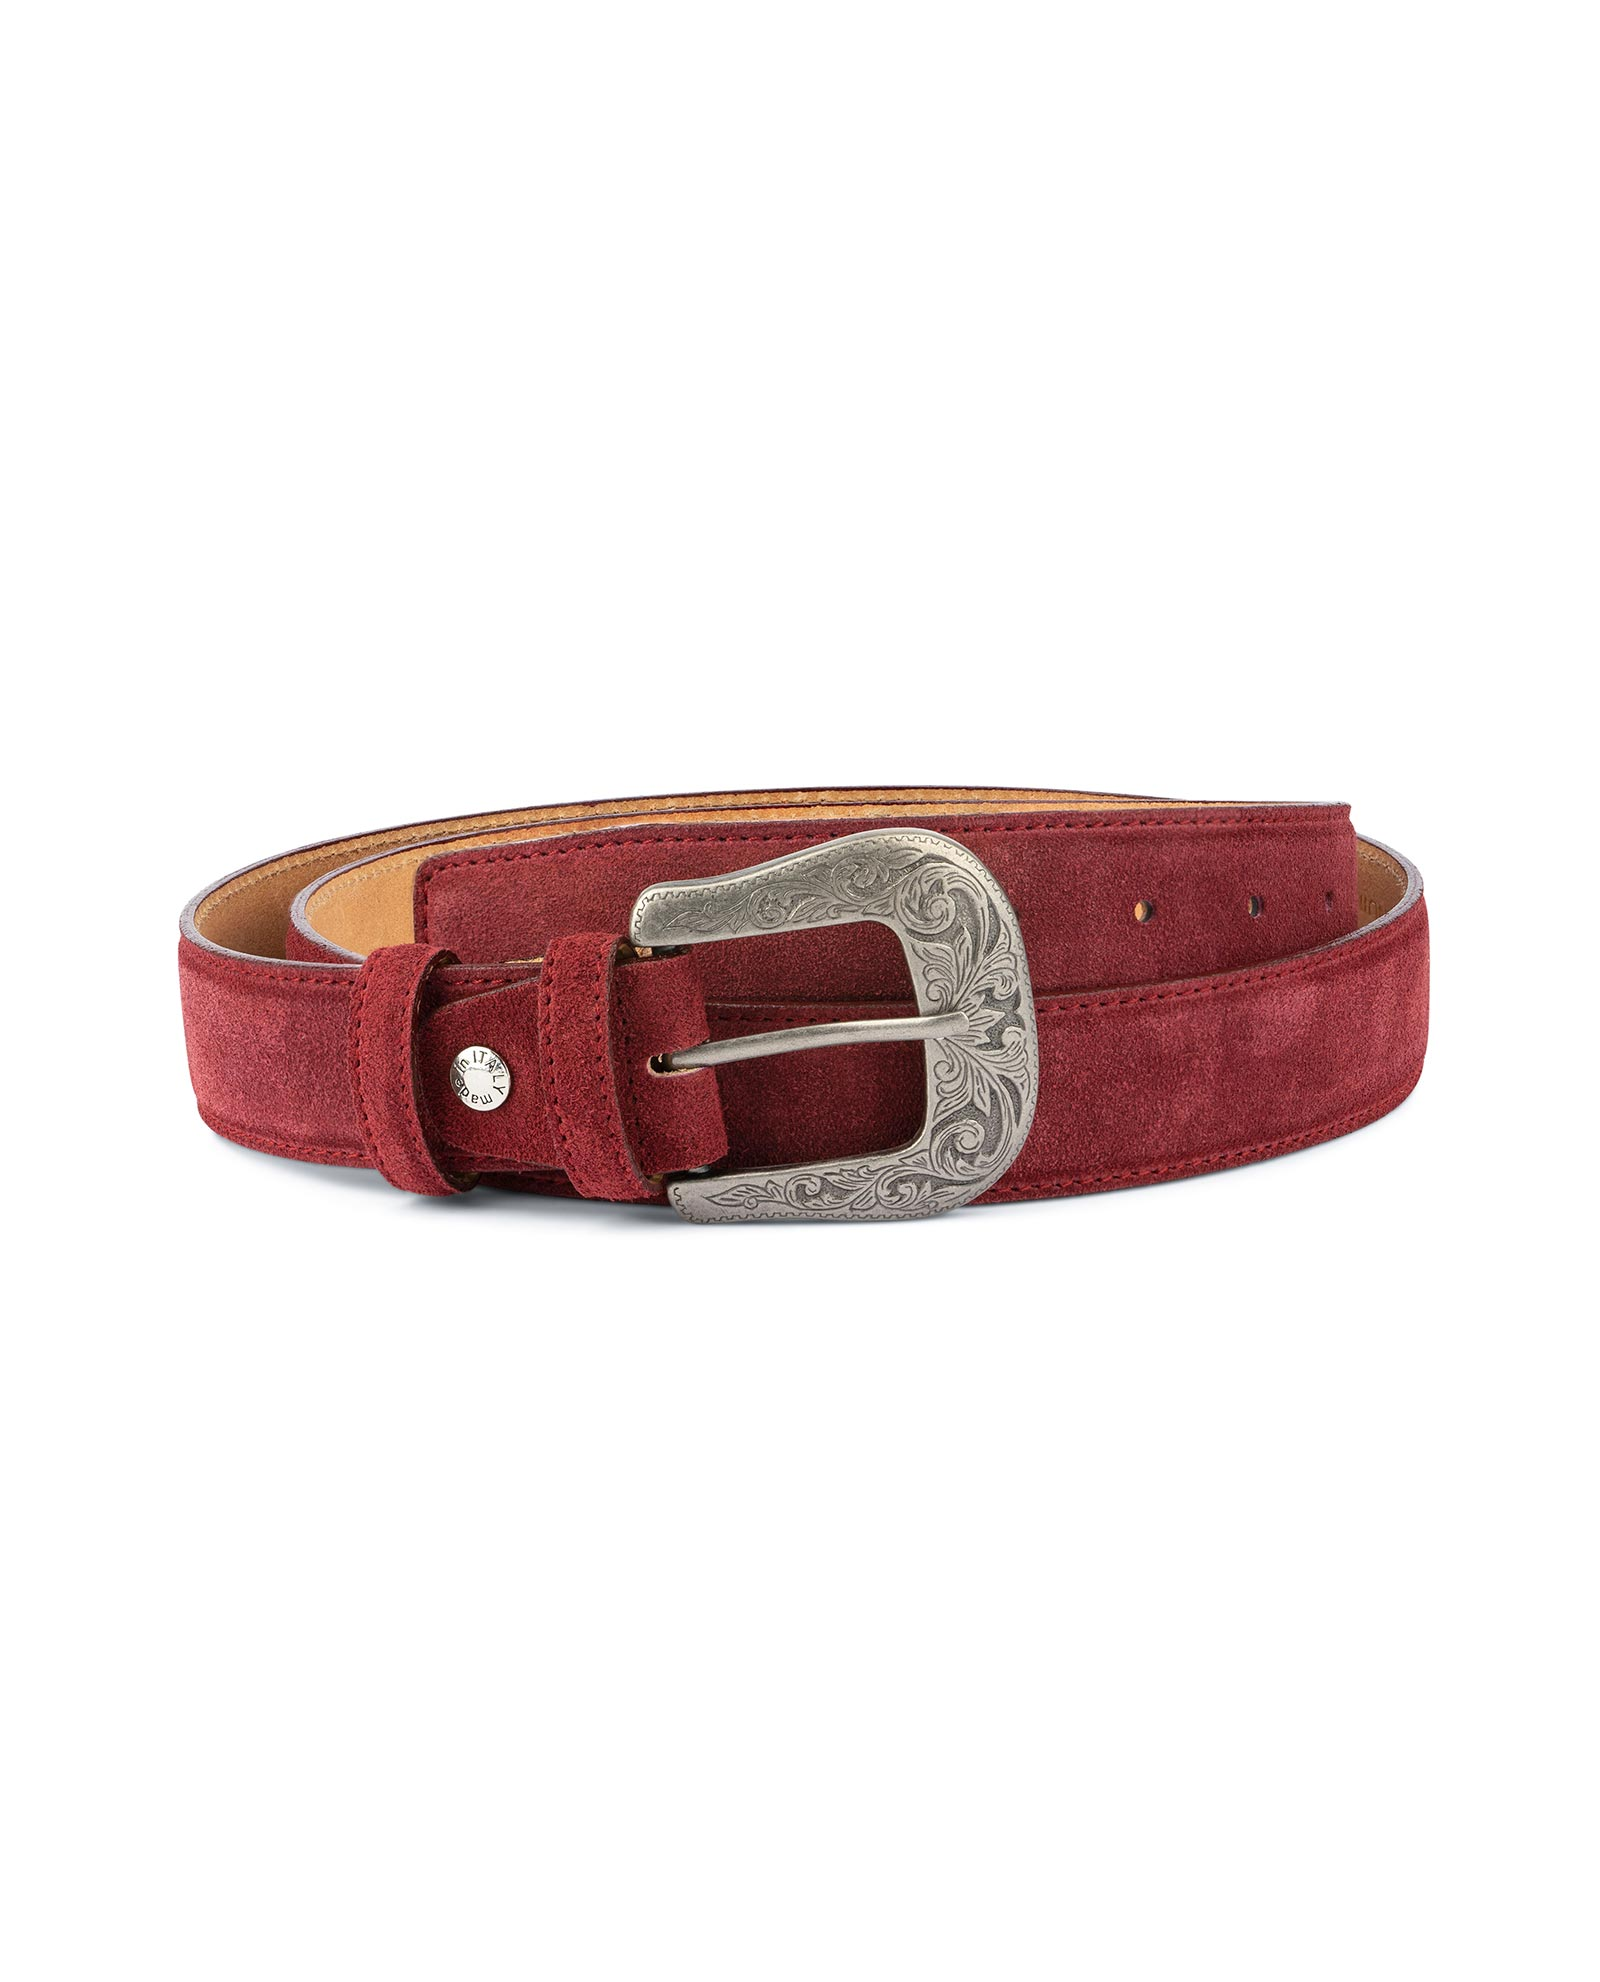 Details about Burgundy belt Mens western belts With buckle Genuine suede leather Cowboy Rancho